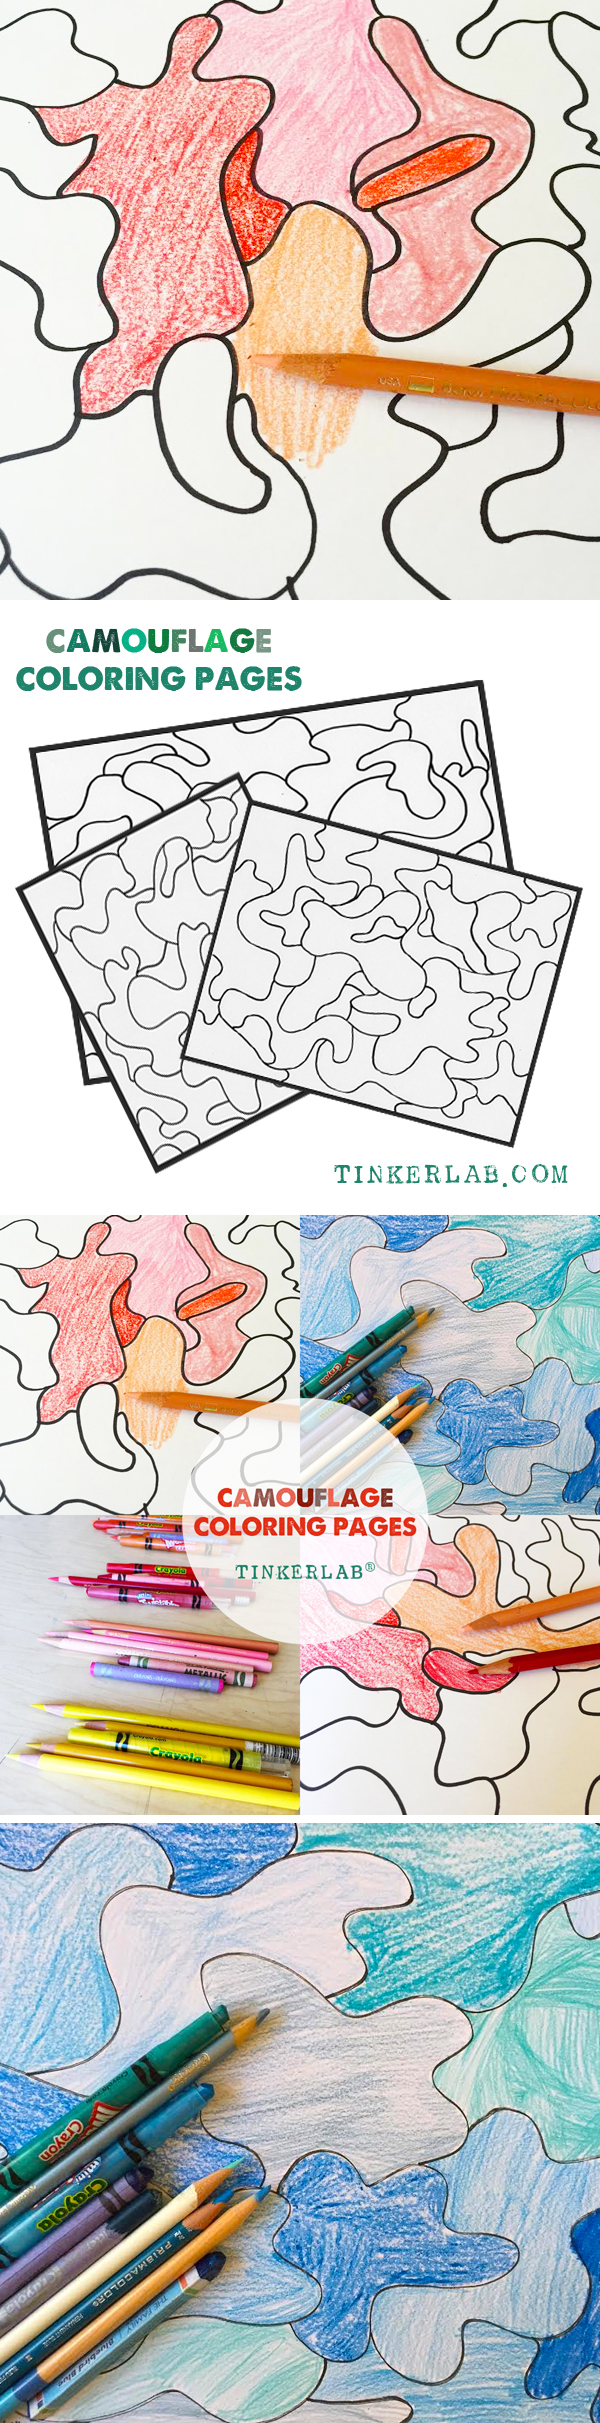 Action Top Camouflage Coloring Pages Gallery Images top camouflage coloring pages a creative table prompt tinkerlab page printable on images